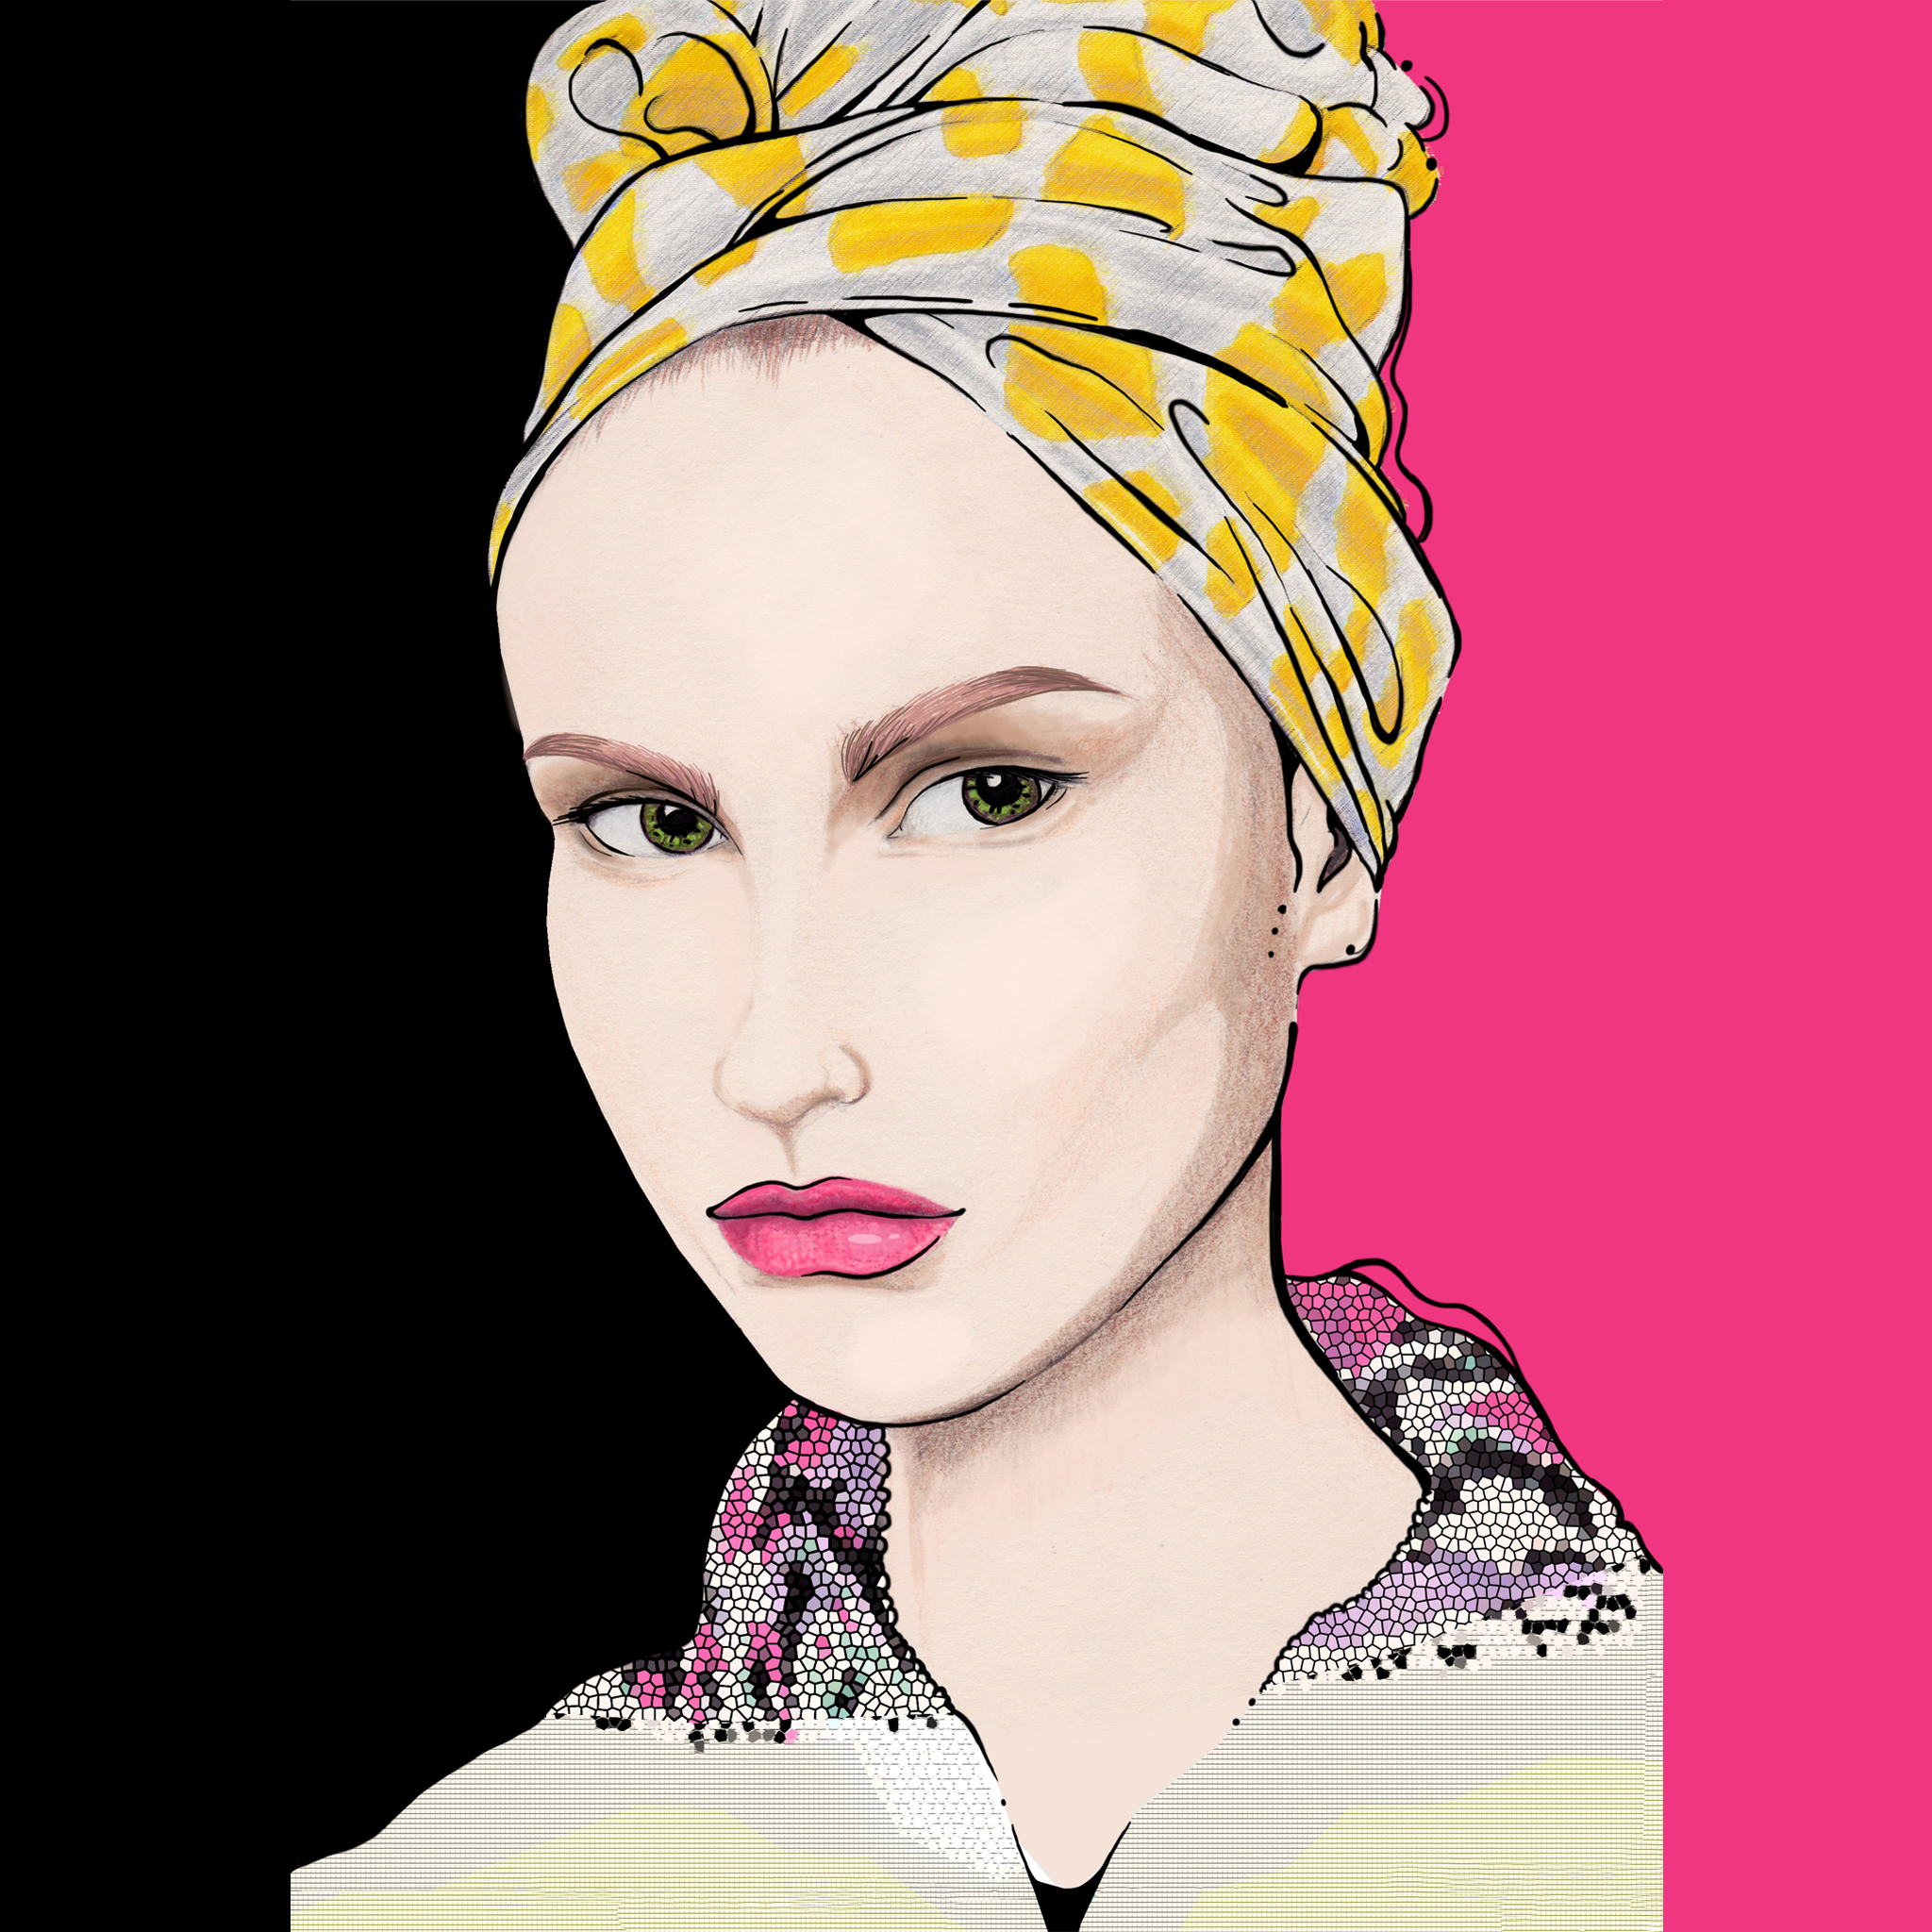 aase hopstock bold and vibrant fashion illustration